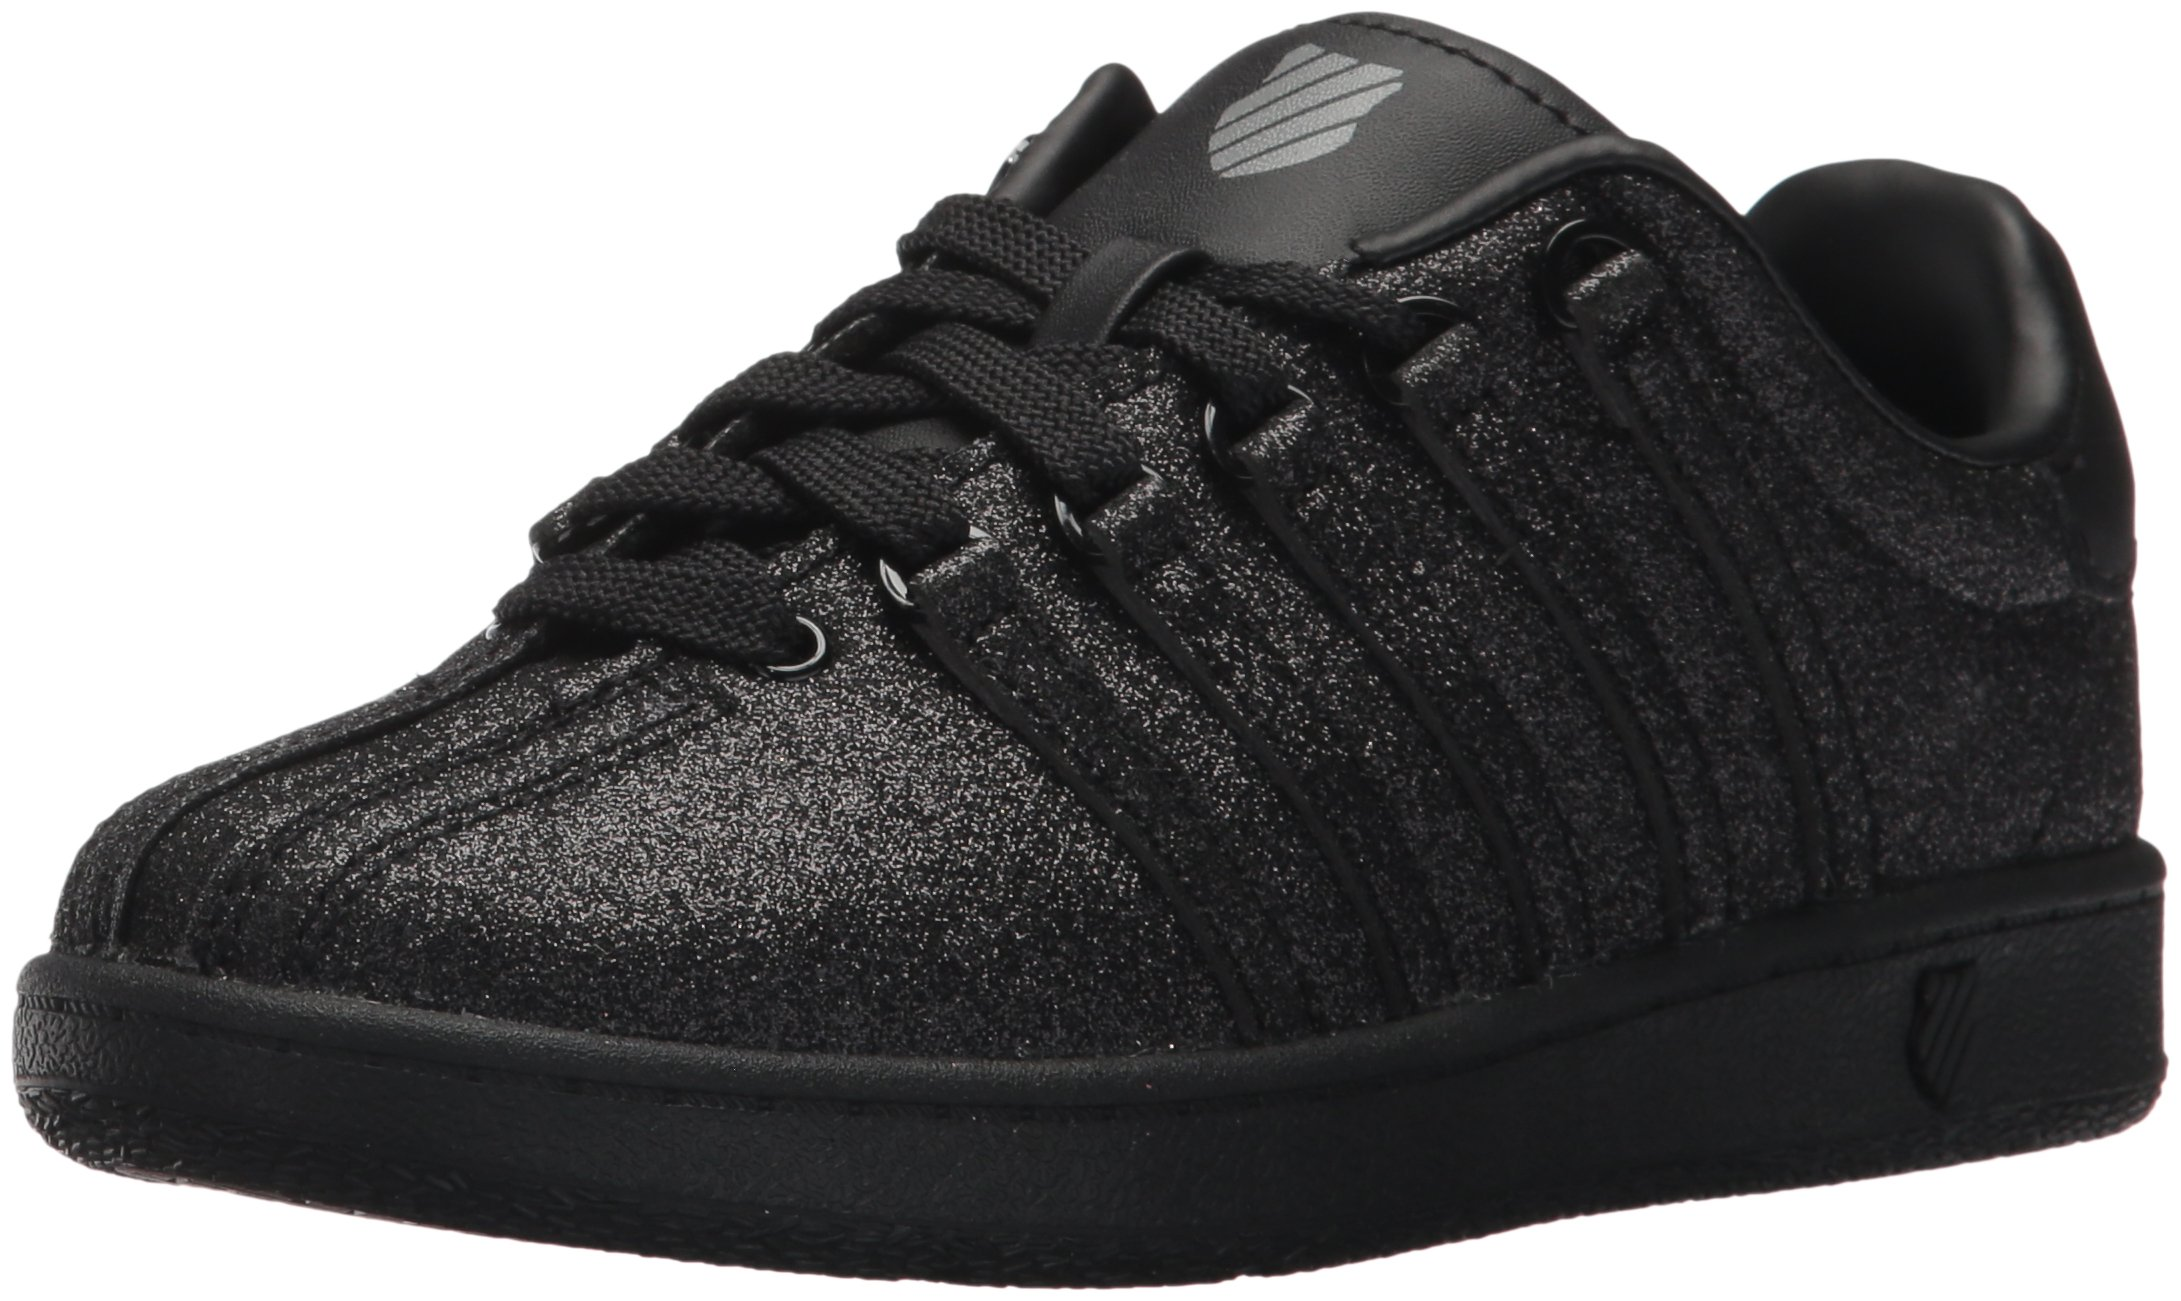 K-Swiss Unisex-Kids Classic VN Sneaker, black/Sparkle, 11.5 M US Little Kid